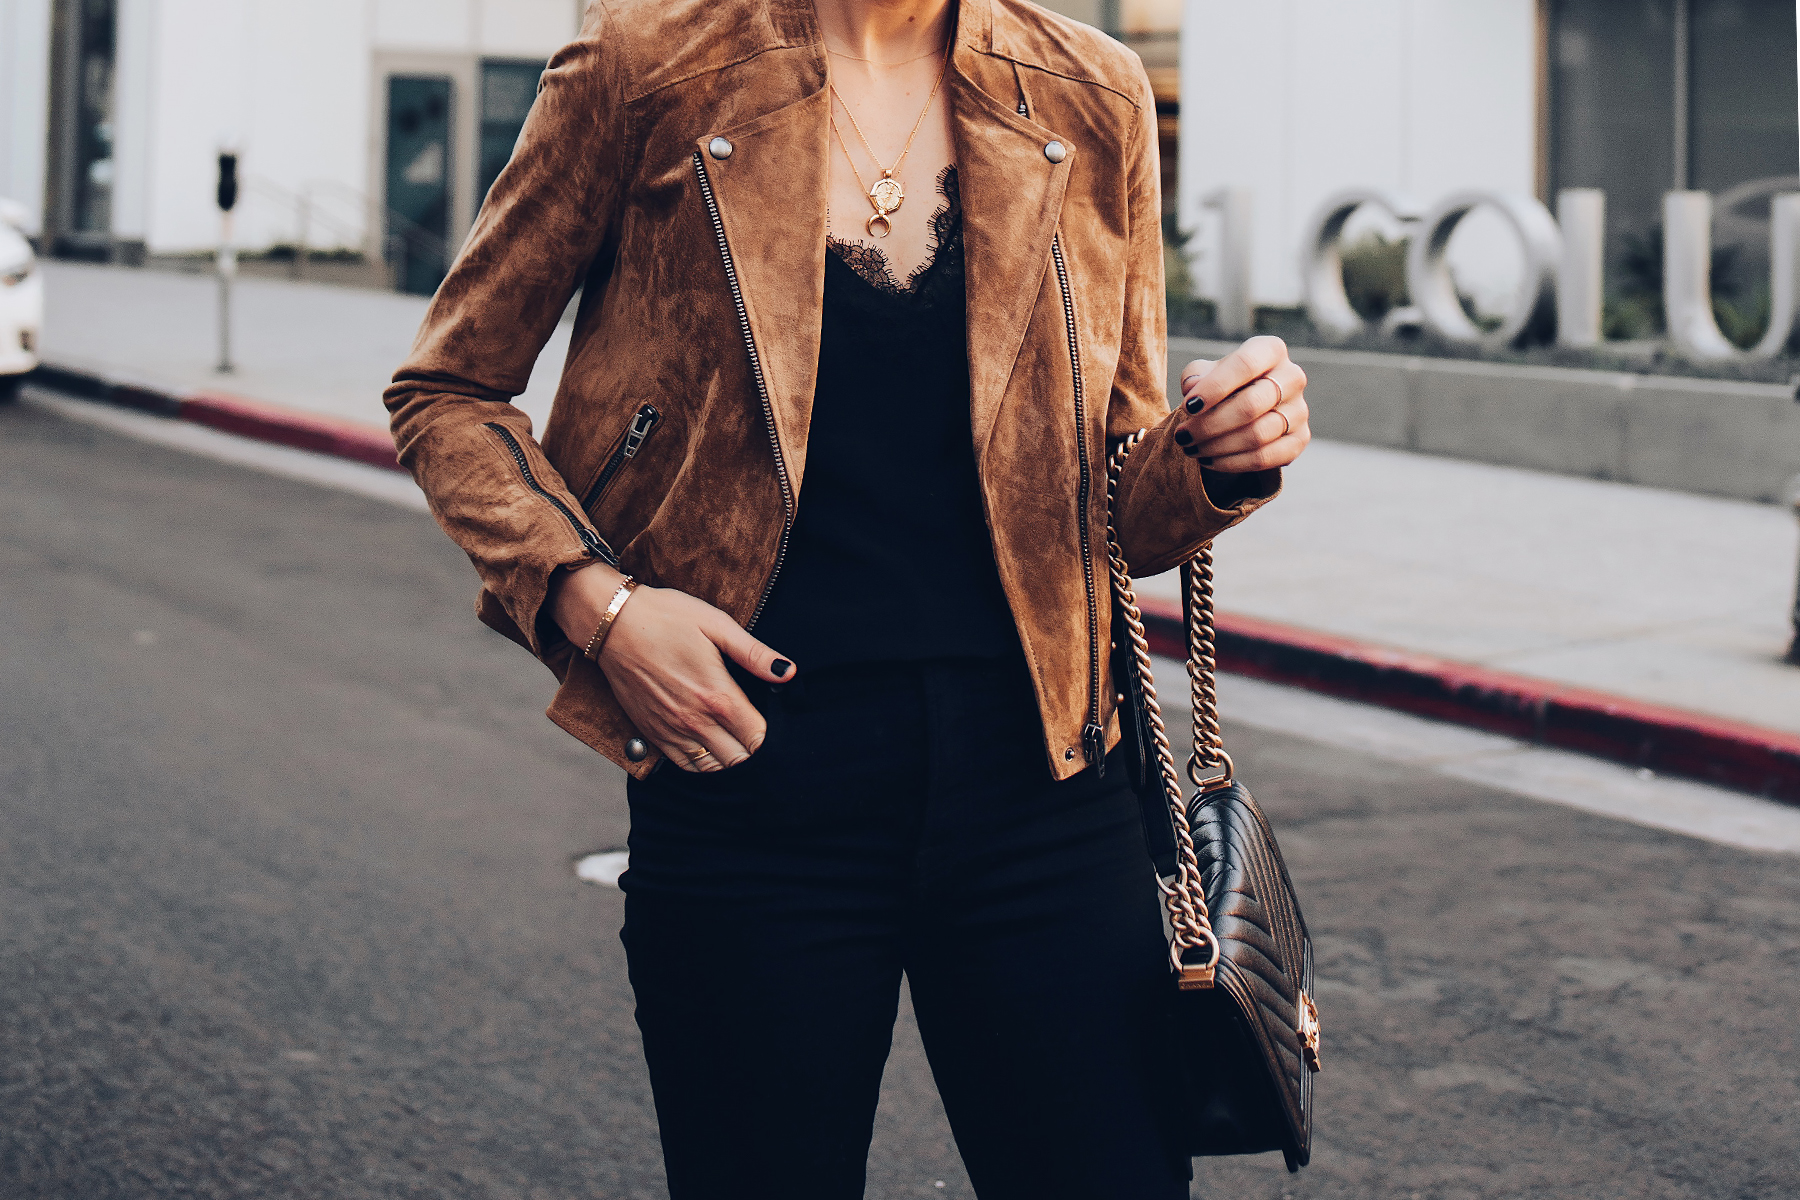 Woman Wearing Blanknyc Tan Suede Moto Jacket Black Lacet Cami Black Jeans Chanel Black Boy Bag Fashion Jackson San Diego Fashion Blogger Street Style